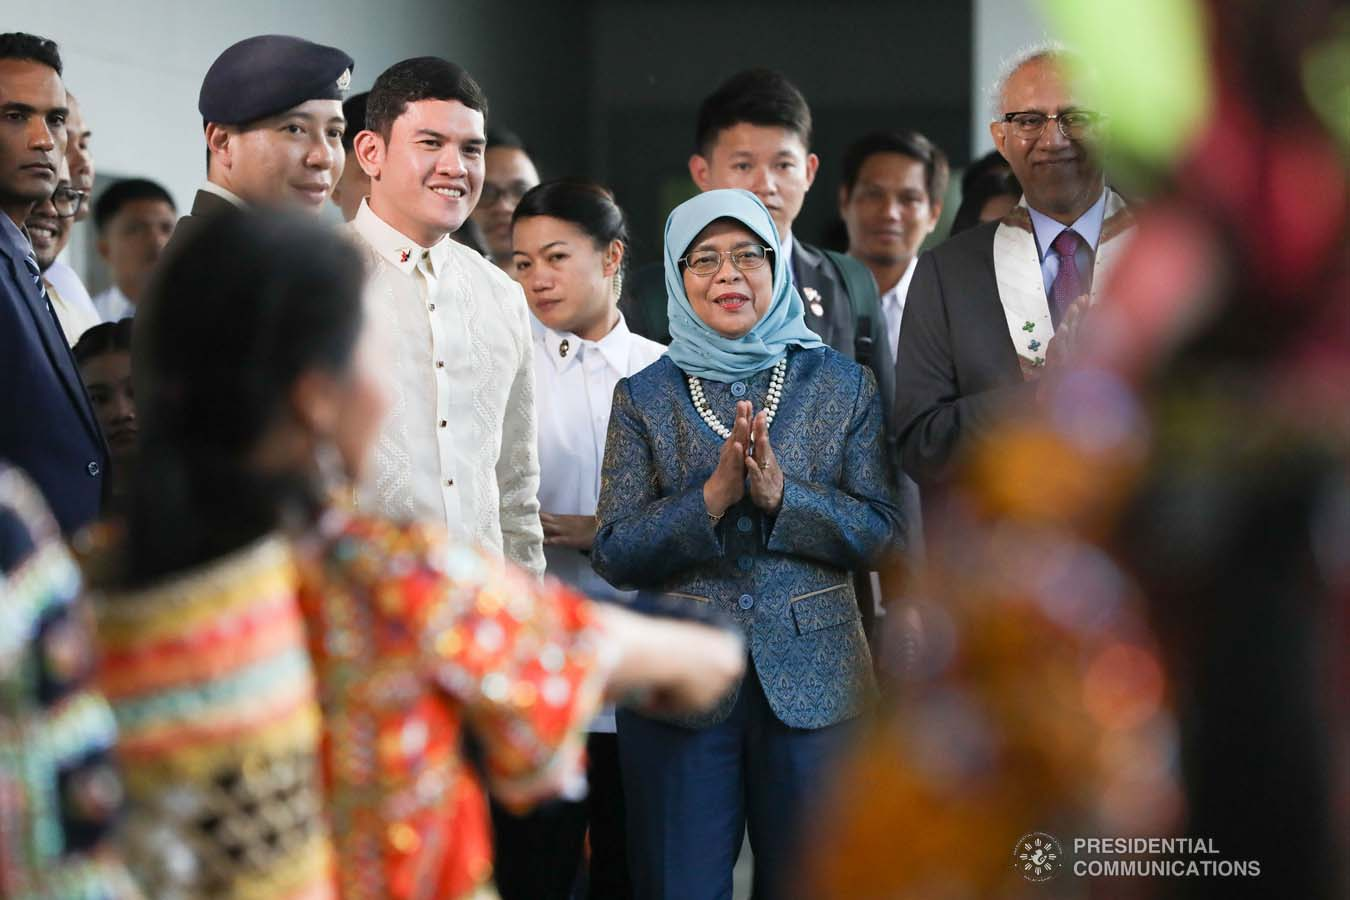 Republic of Singapore President Halimah Yacob admires the cultural performers who entertained her upon her arrival at the Davao International Airport in Davao City on September 10, 2019. Accompanying the Singaporean President is Davao City Vice Mayor Sebastian Duterte. KARL NORMAN ALONZO/PRESIDENTIAL PHOTO